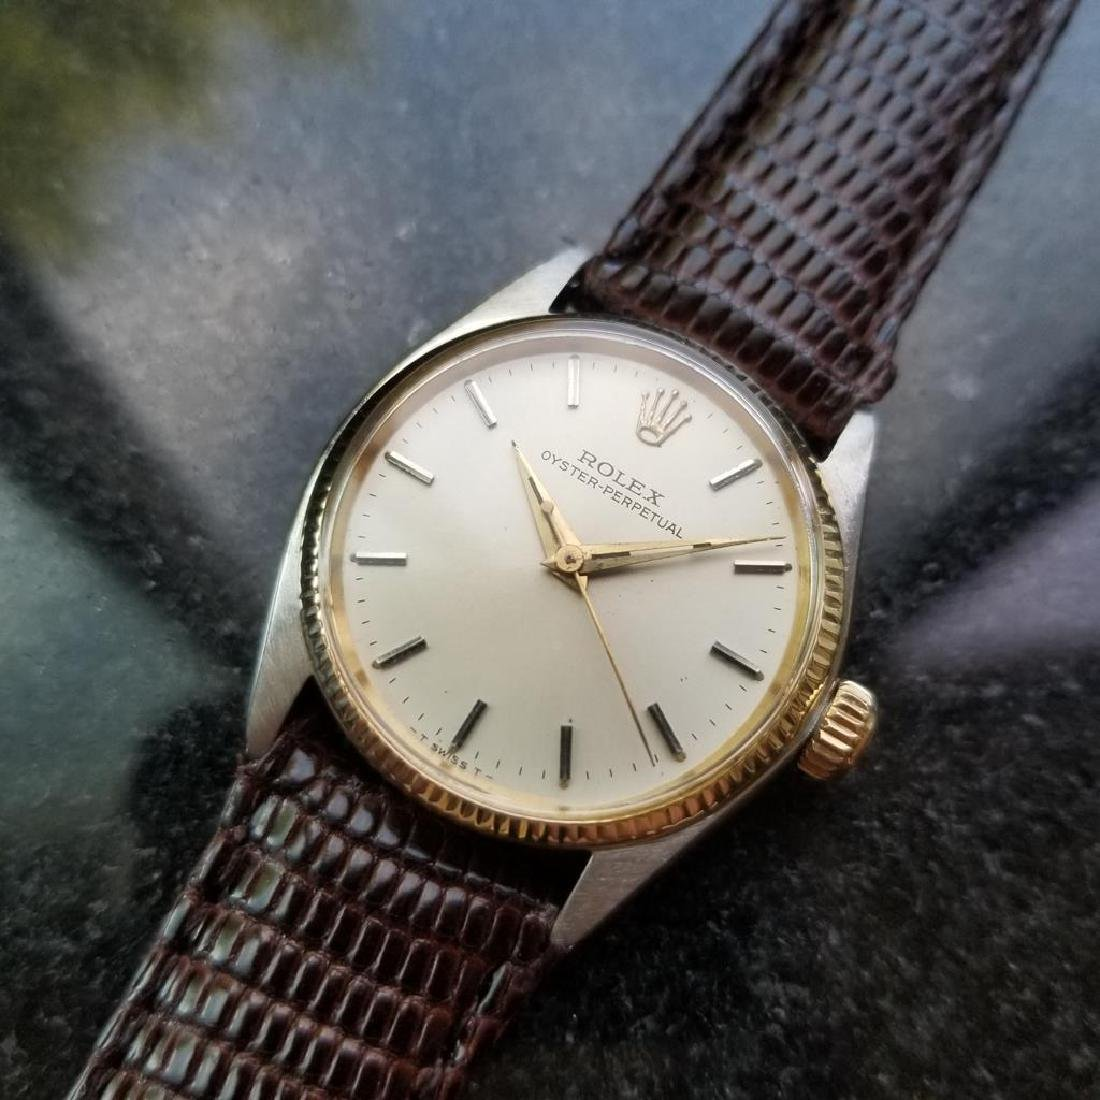 ROLEX Oyster Perpetual ref. 6551 31mm automatic 14k